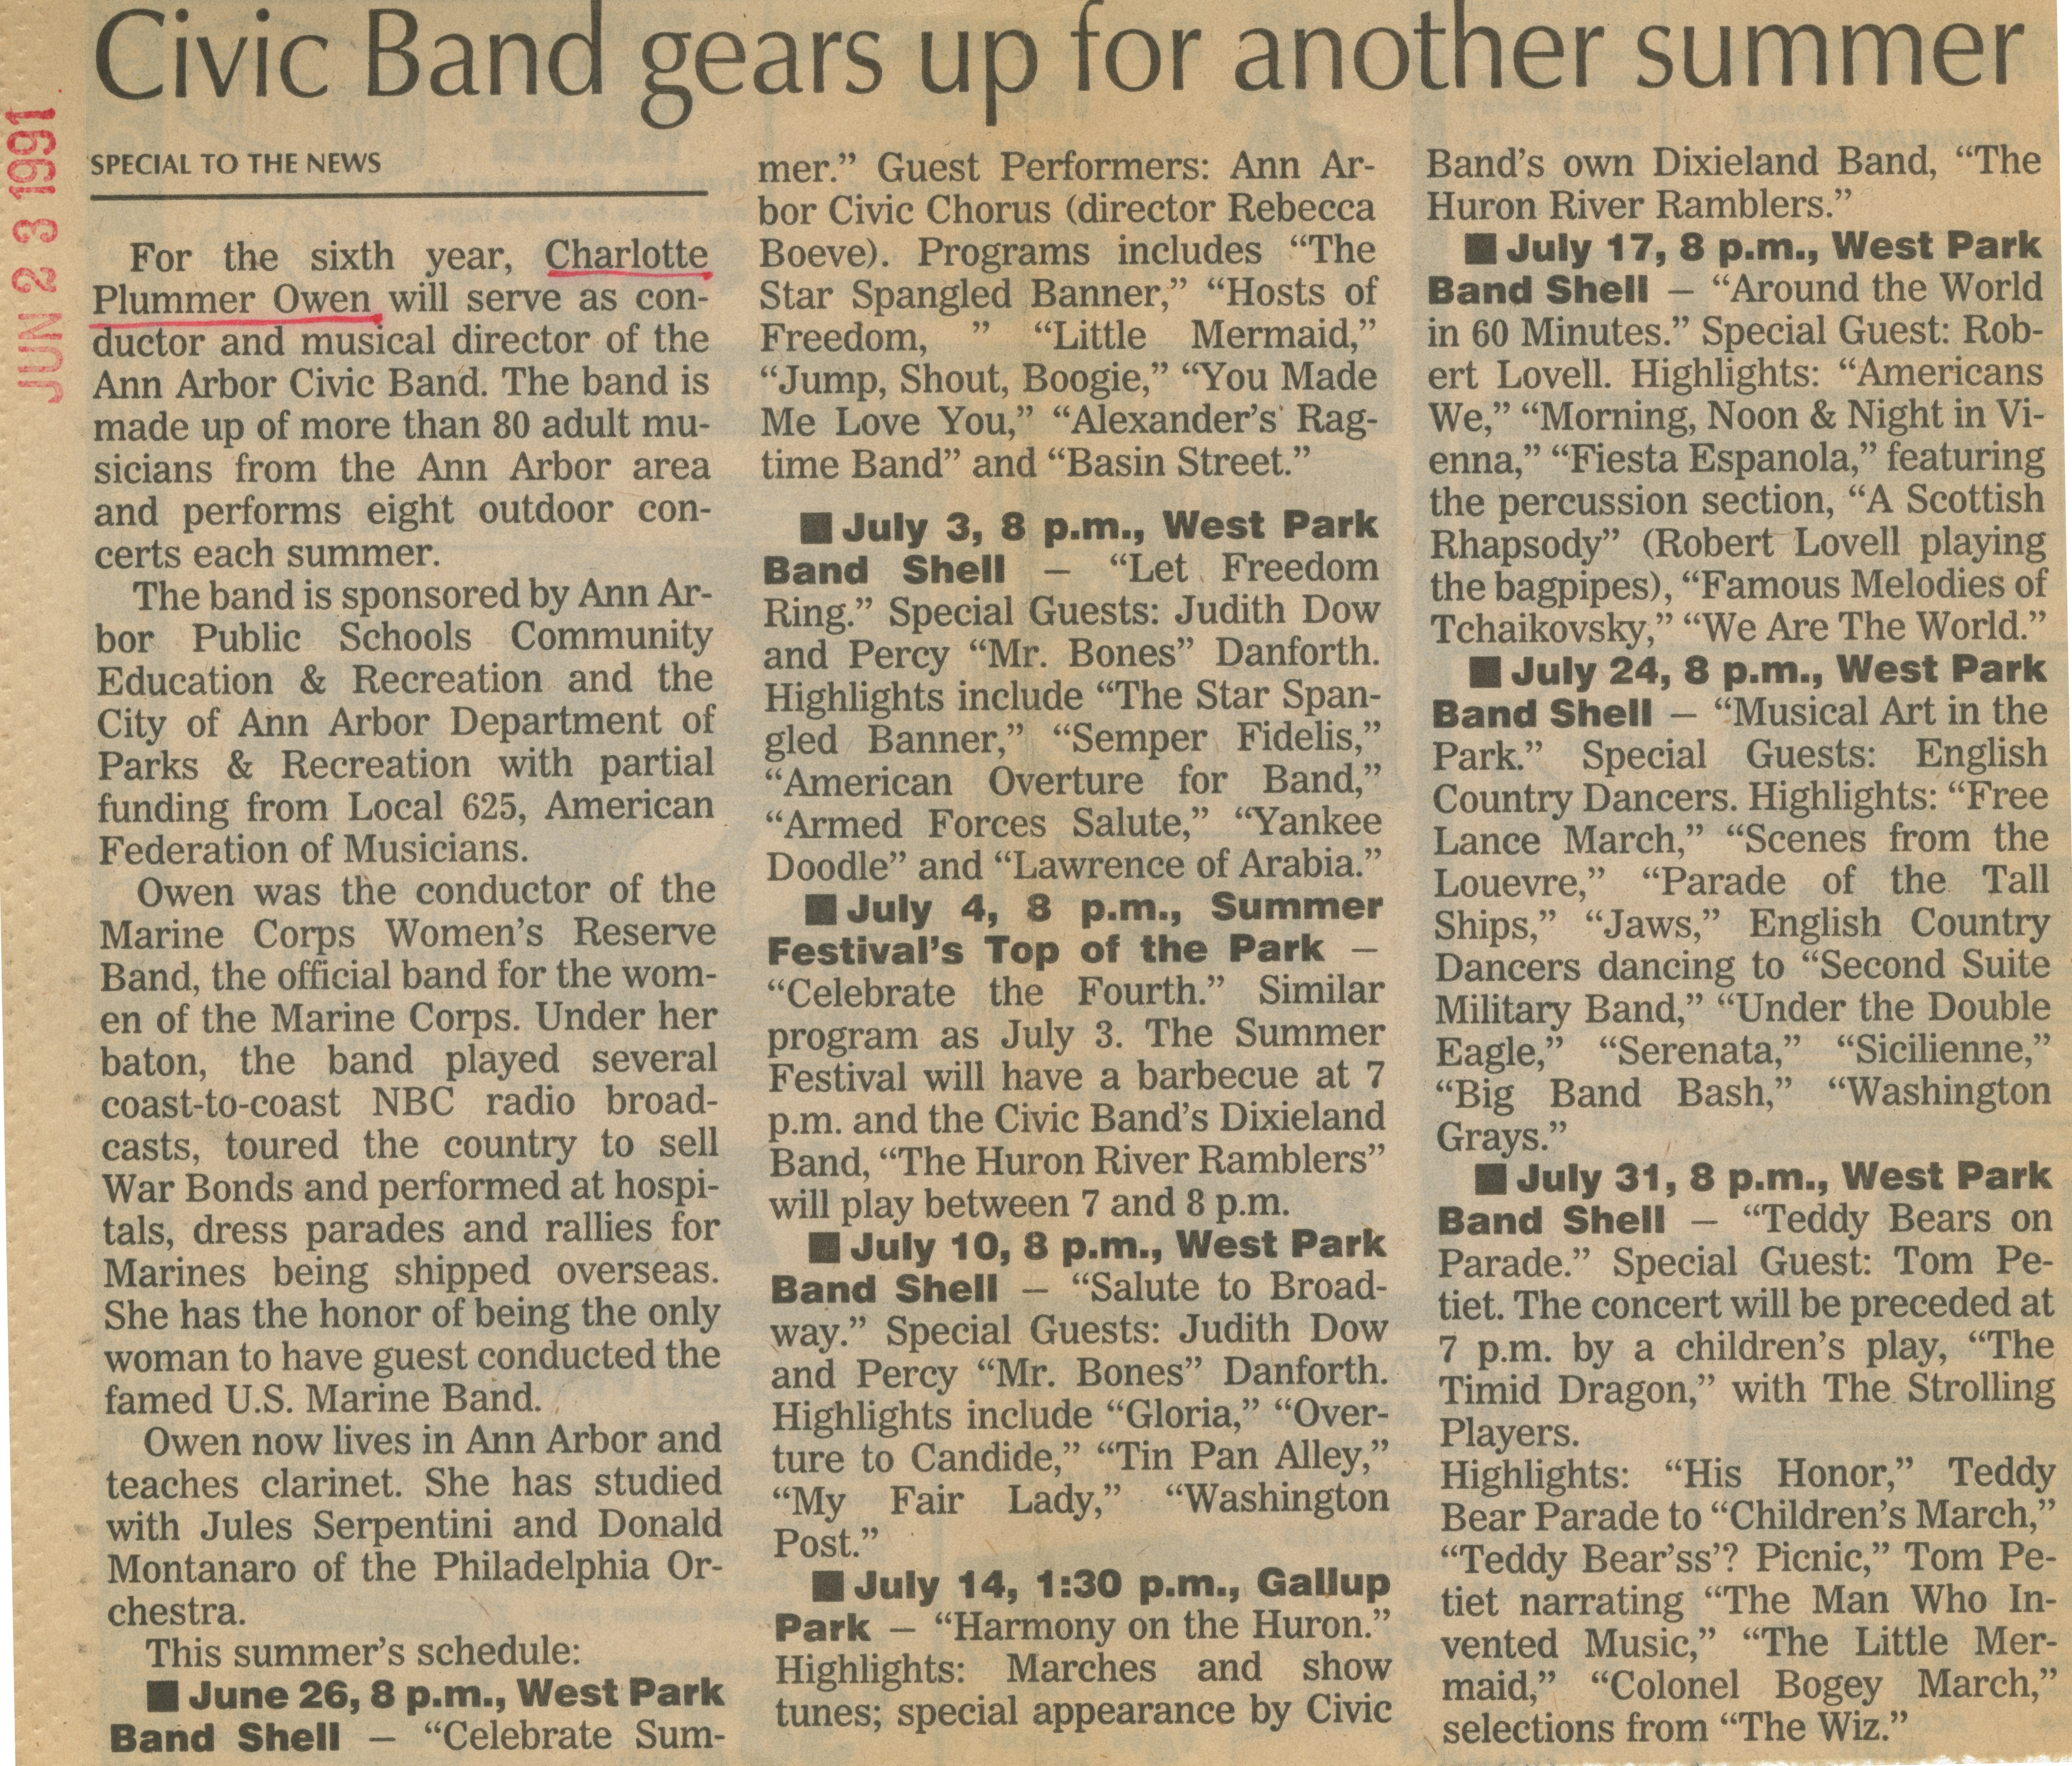 Civic Band gears up for another summer image